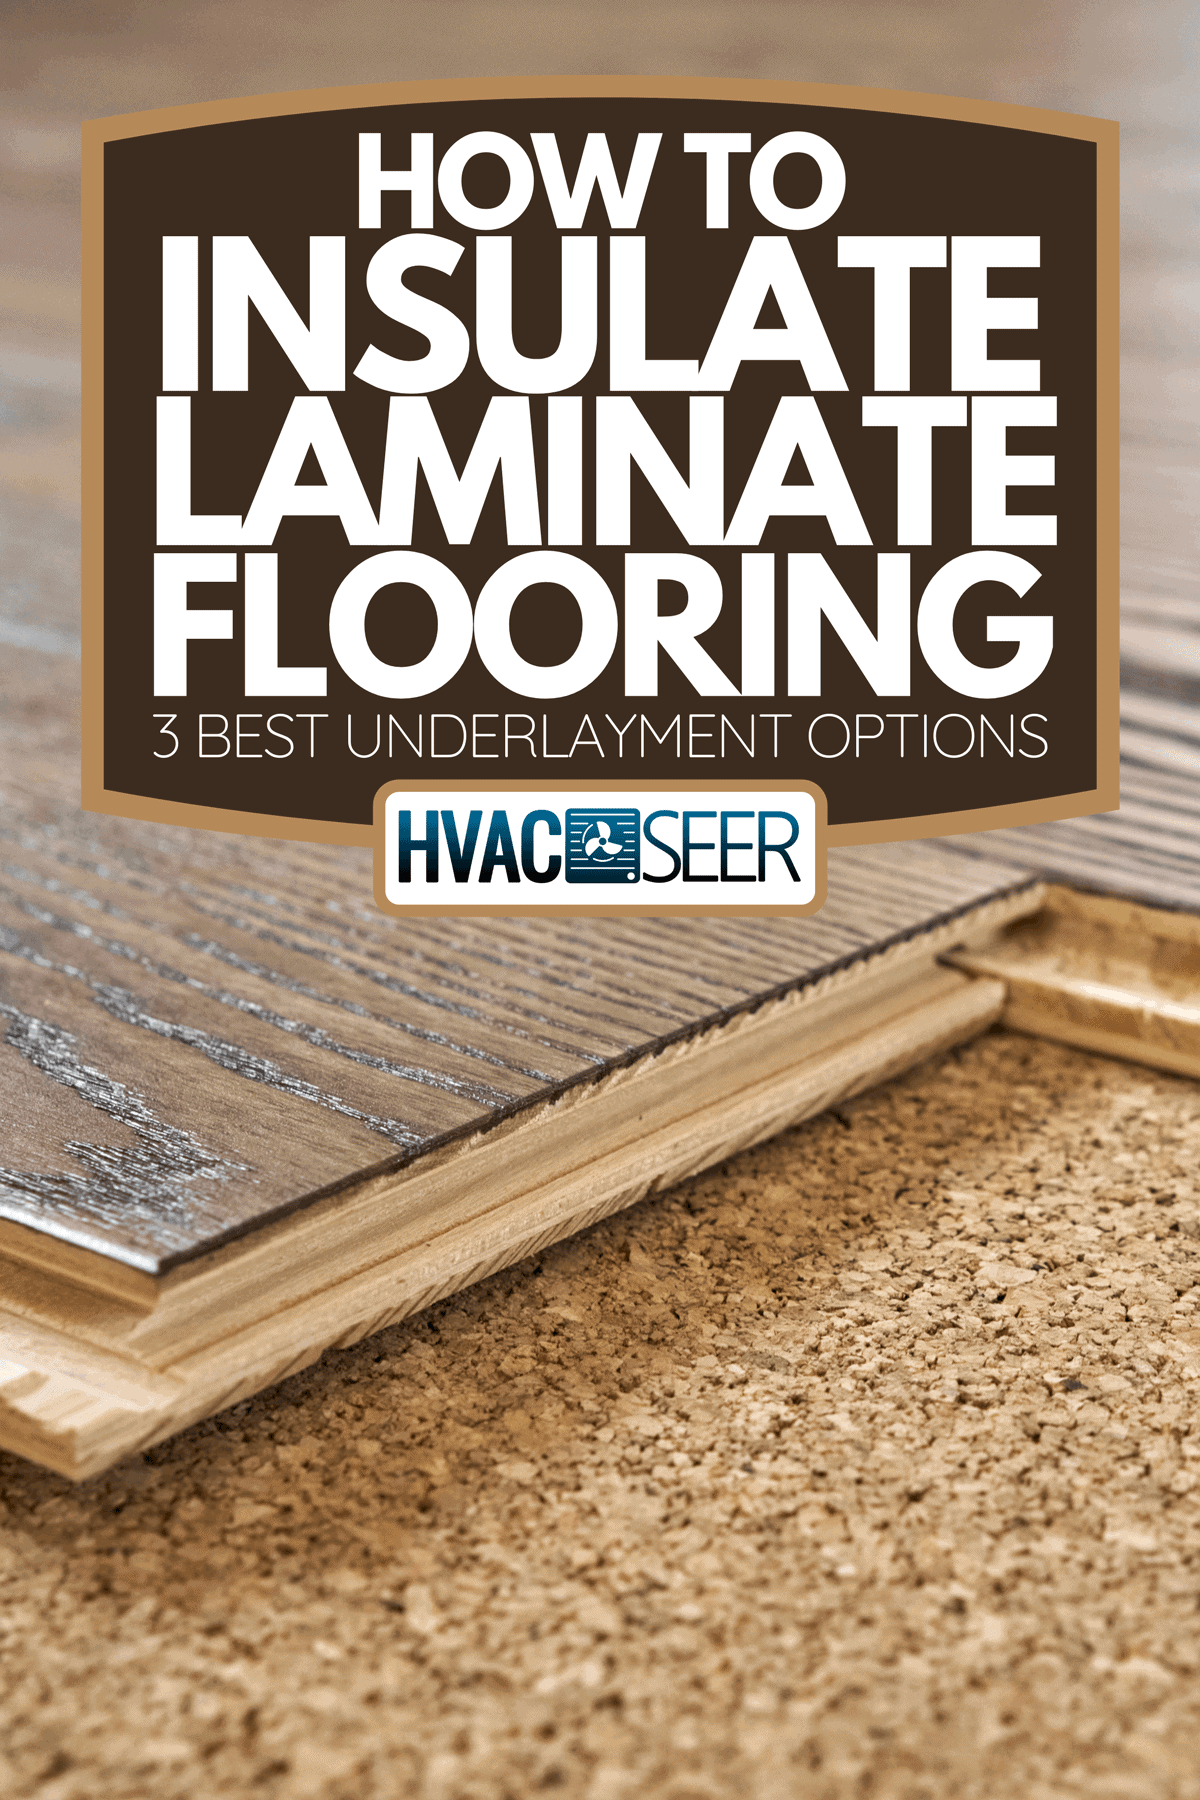 A close-up of laminate substrate and parquet board, How to insulate laminate flooring